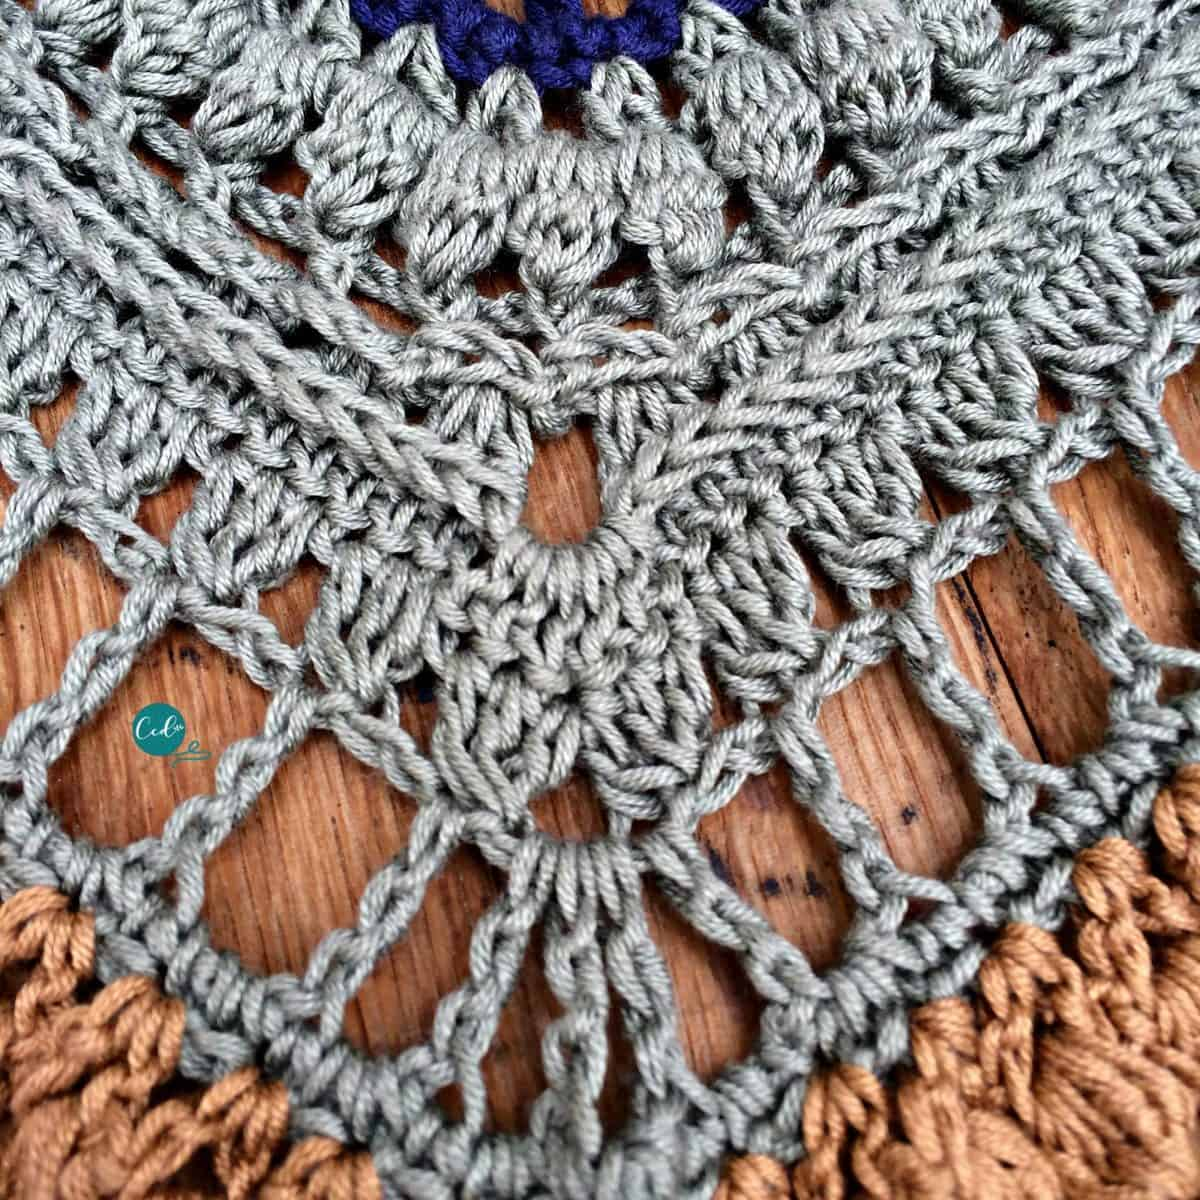 Close up of green rows repeating crochet shawlette stitches.